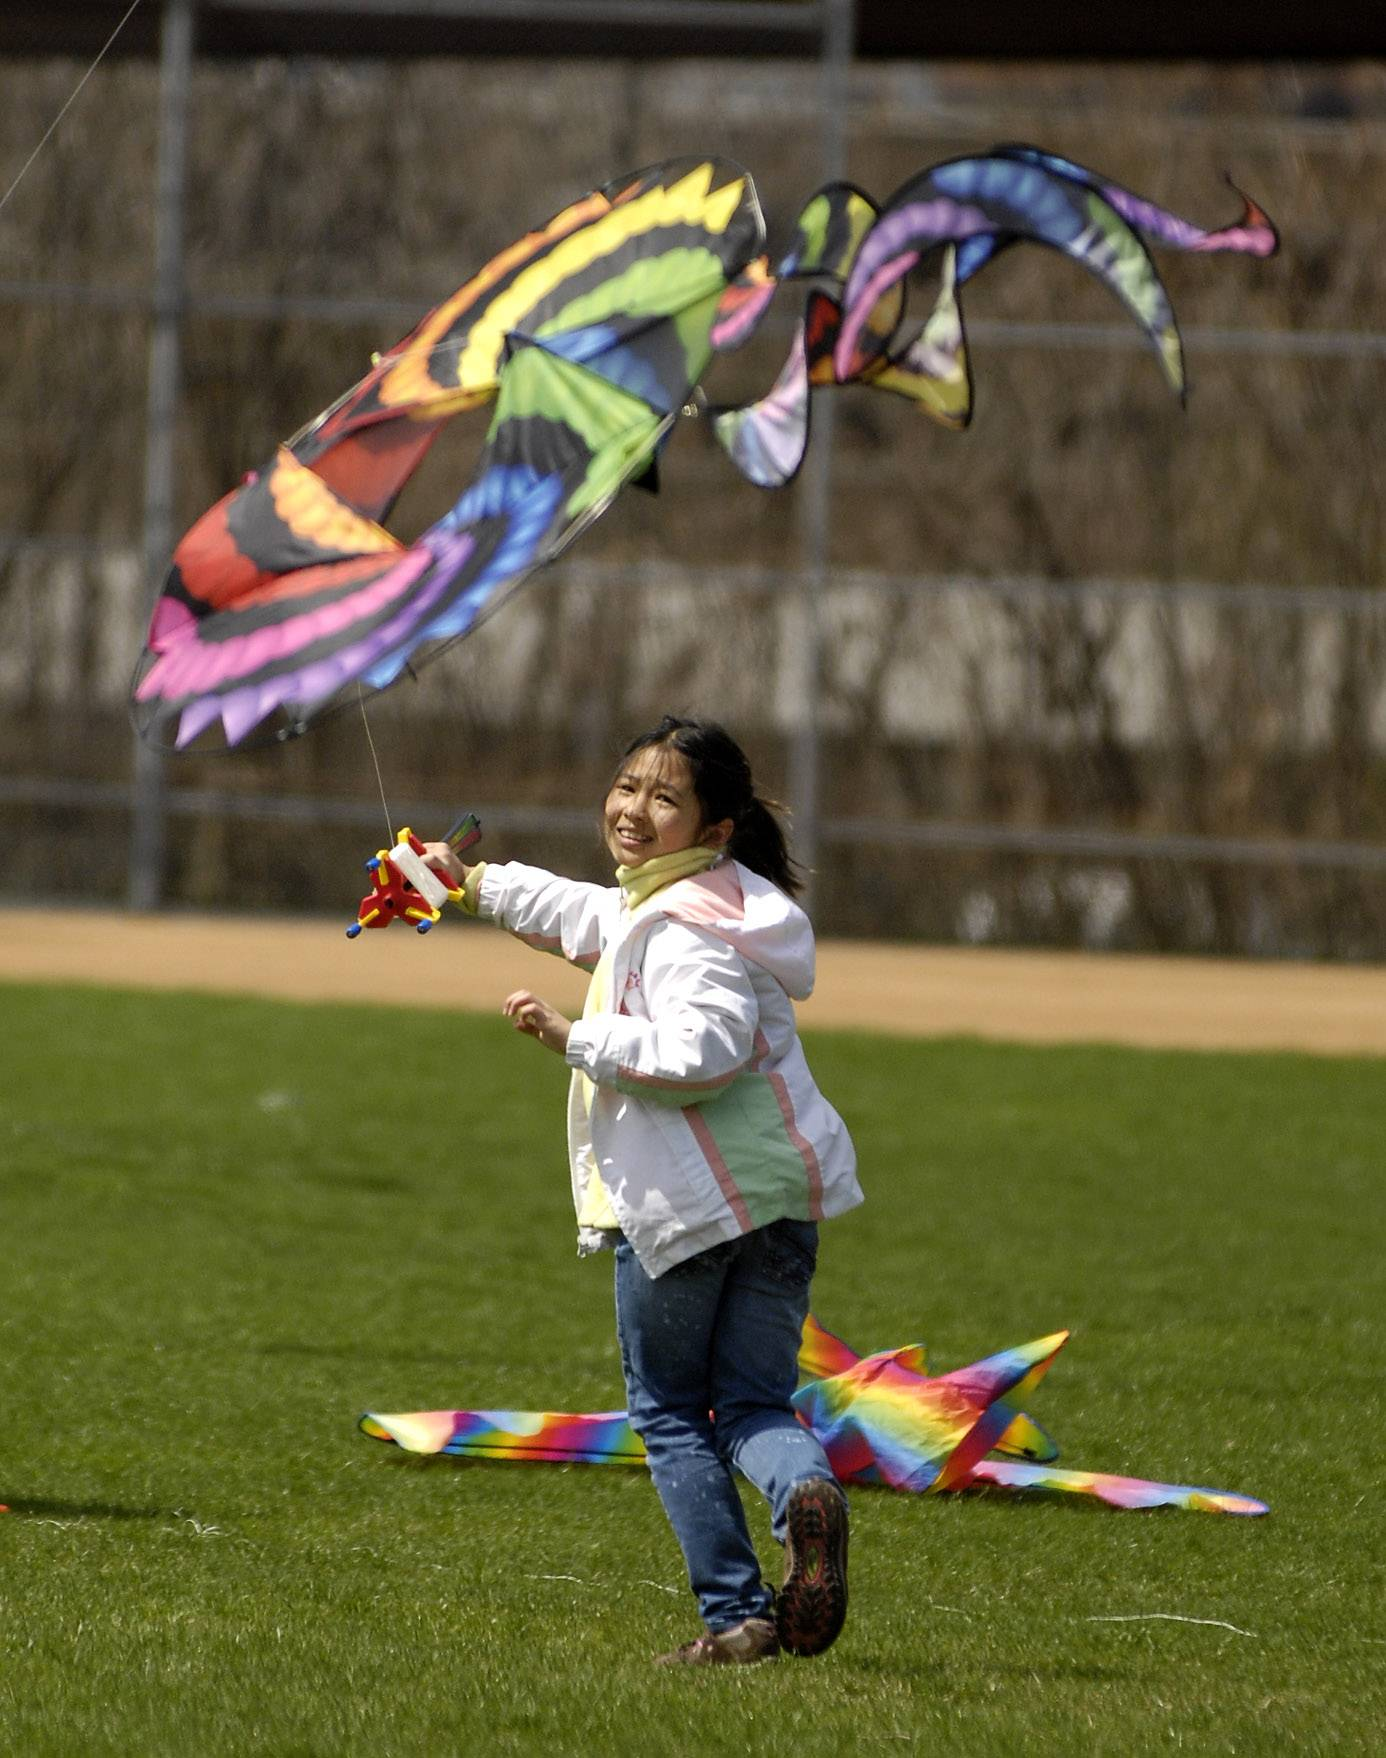 The Wheaton Park District is hosting its annual Go Fly a Kite event at Graf Park from 10 a.m. to 2 p.m. Saturday, May 3.